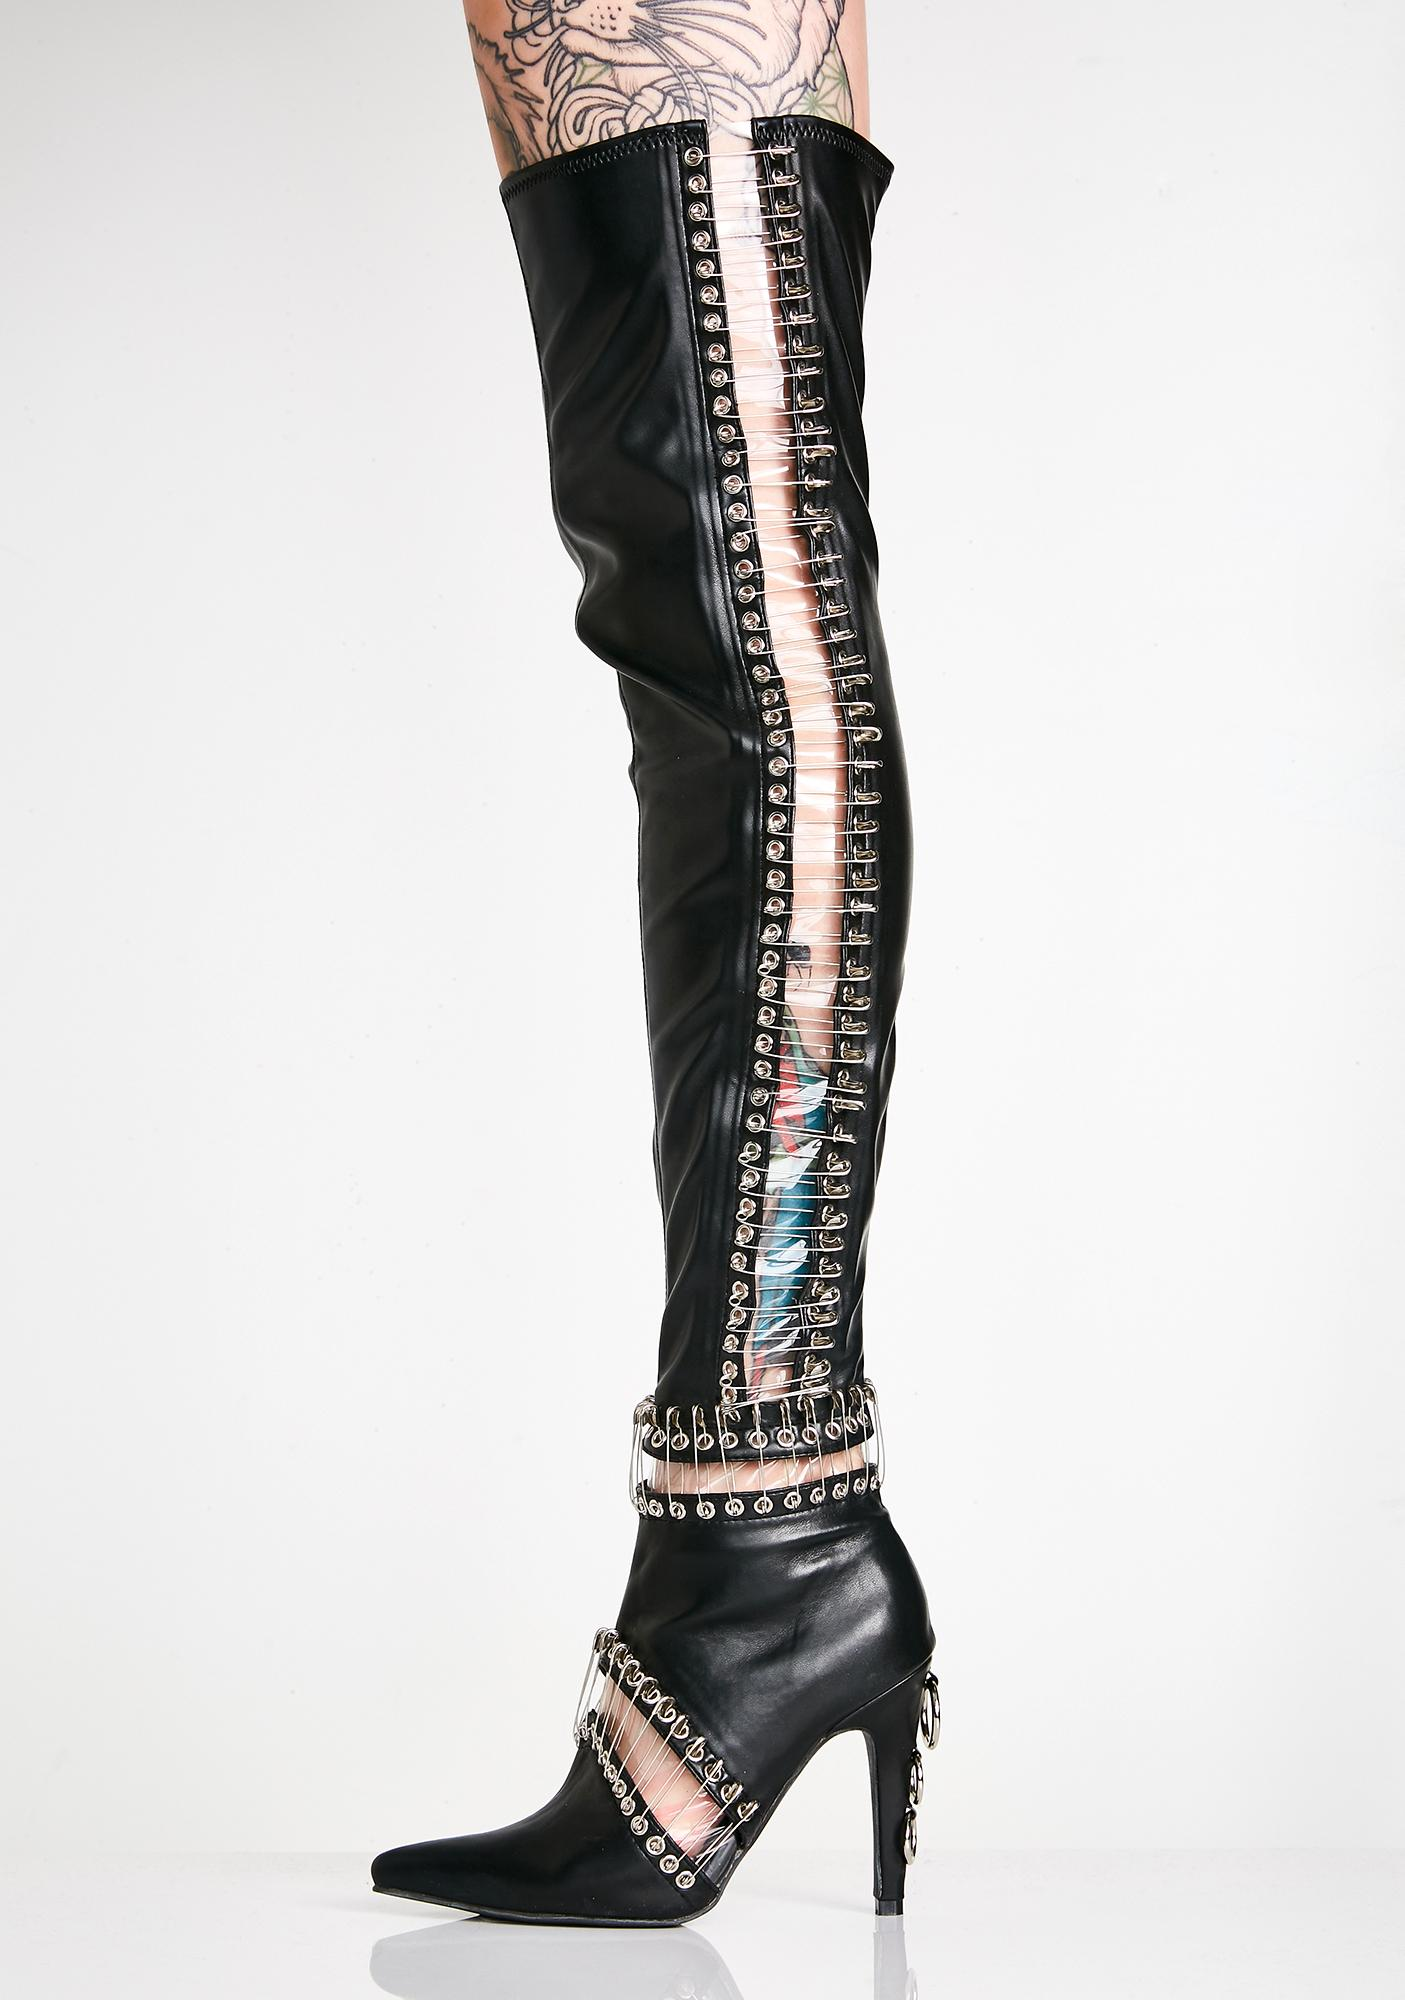 Current Mood Queen Pin Thigh High Boots